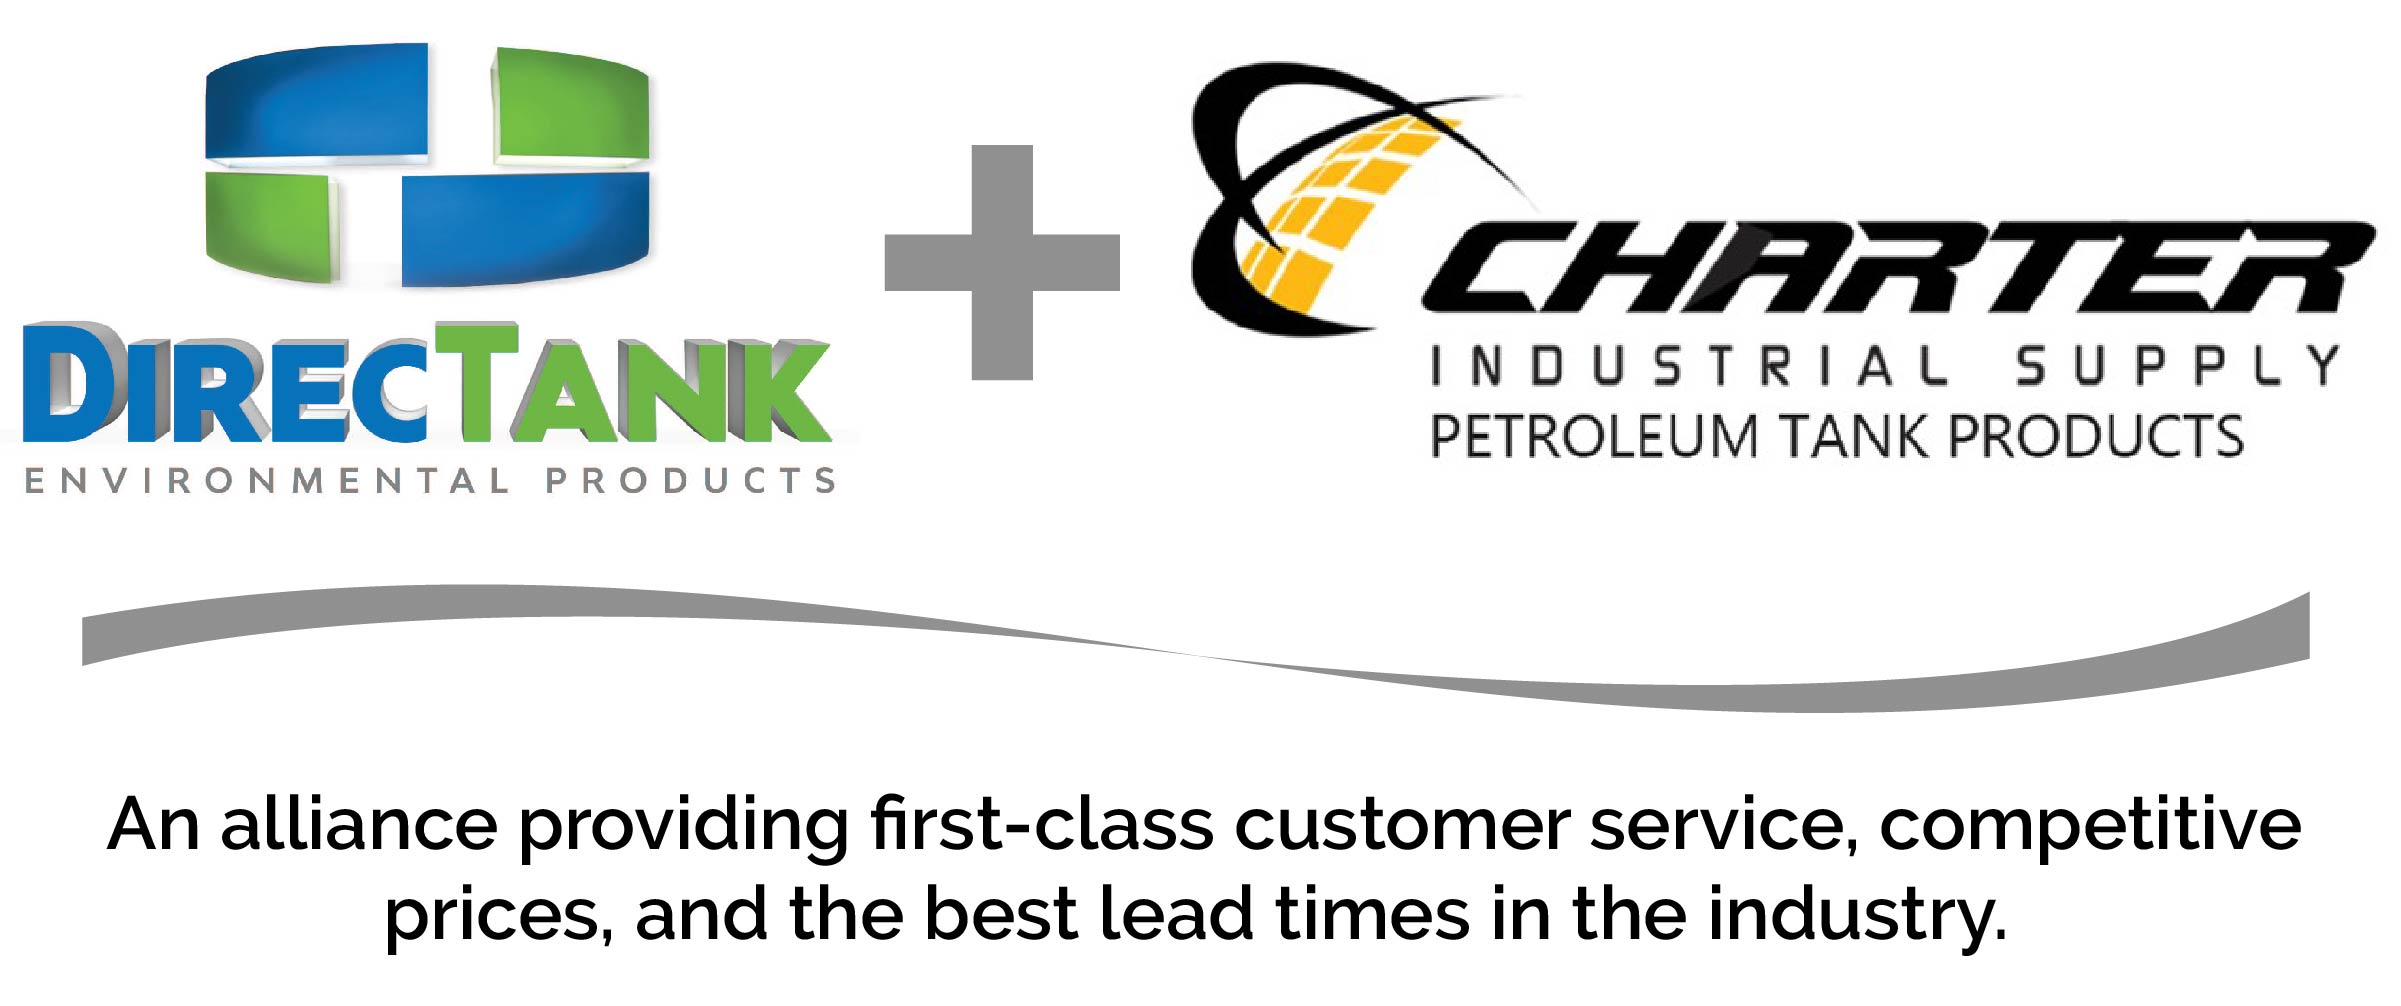 DirecTank Environmental Products, LLC and Charter Industrial Supply, LLC Alliance